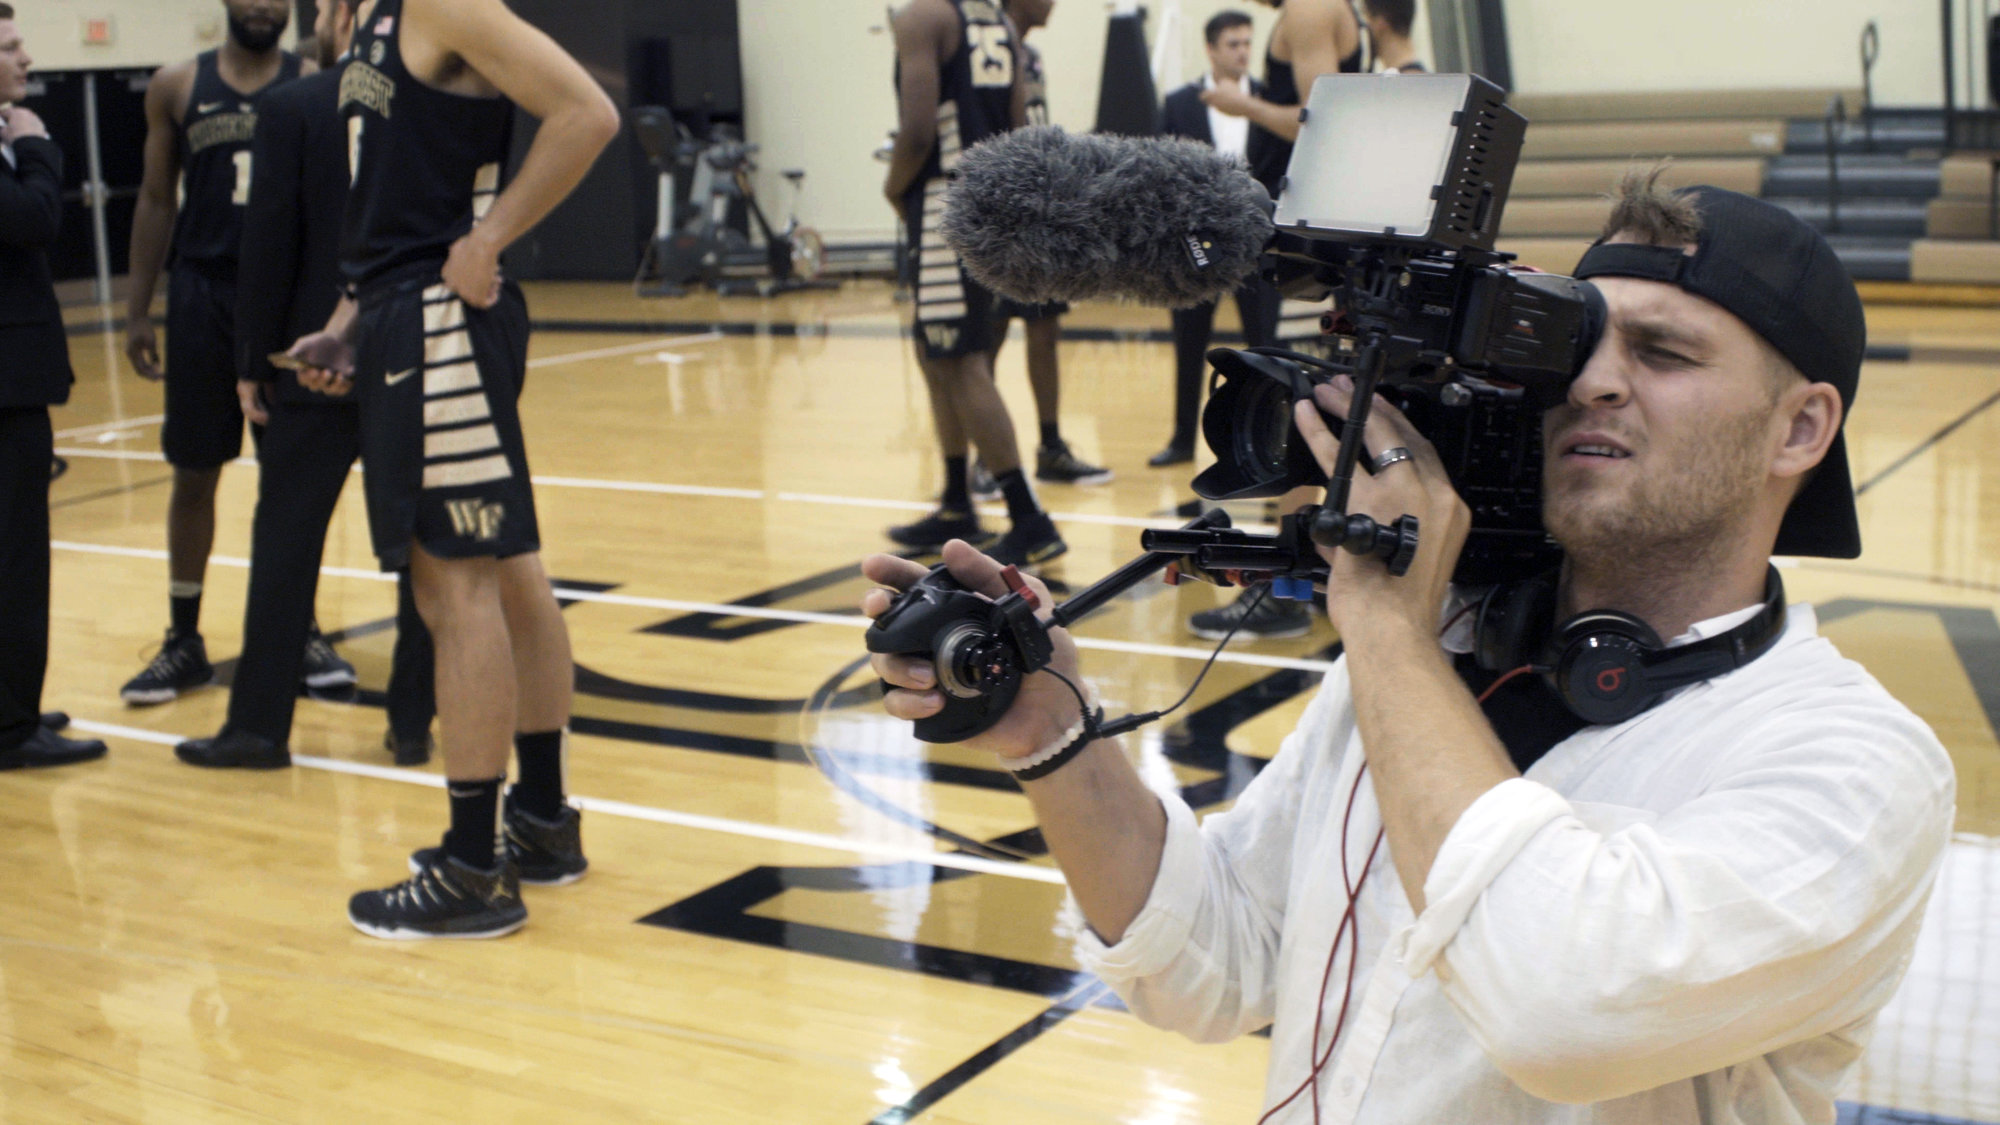 DFP student Oliver Rouch (MFA '18) working with the Wake Forest basketball team. Photo courtesy of Documentary Film Program.